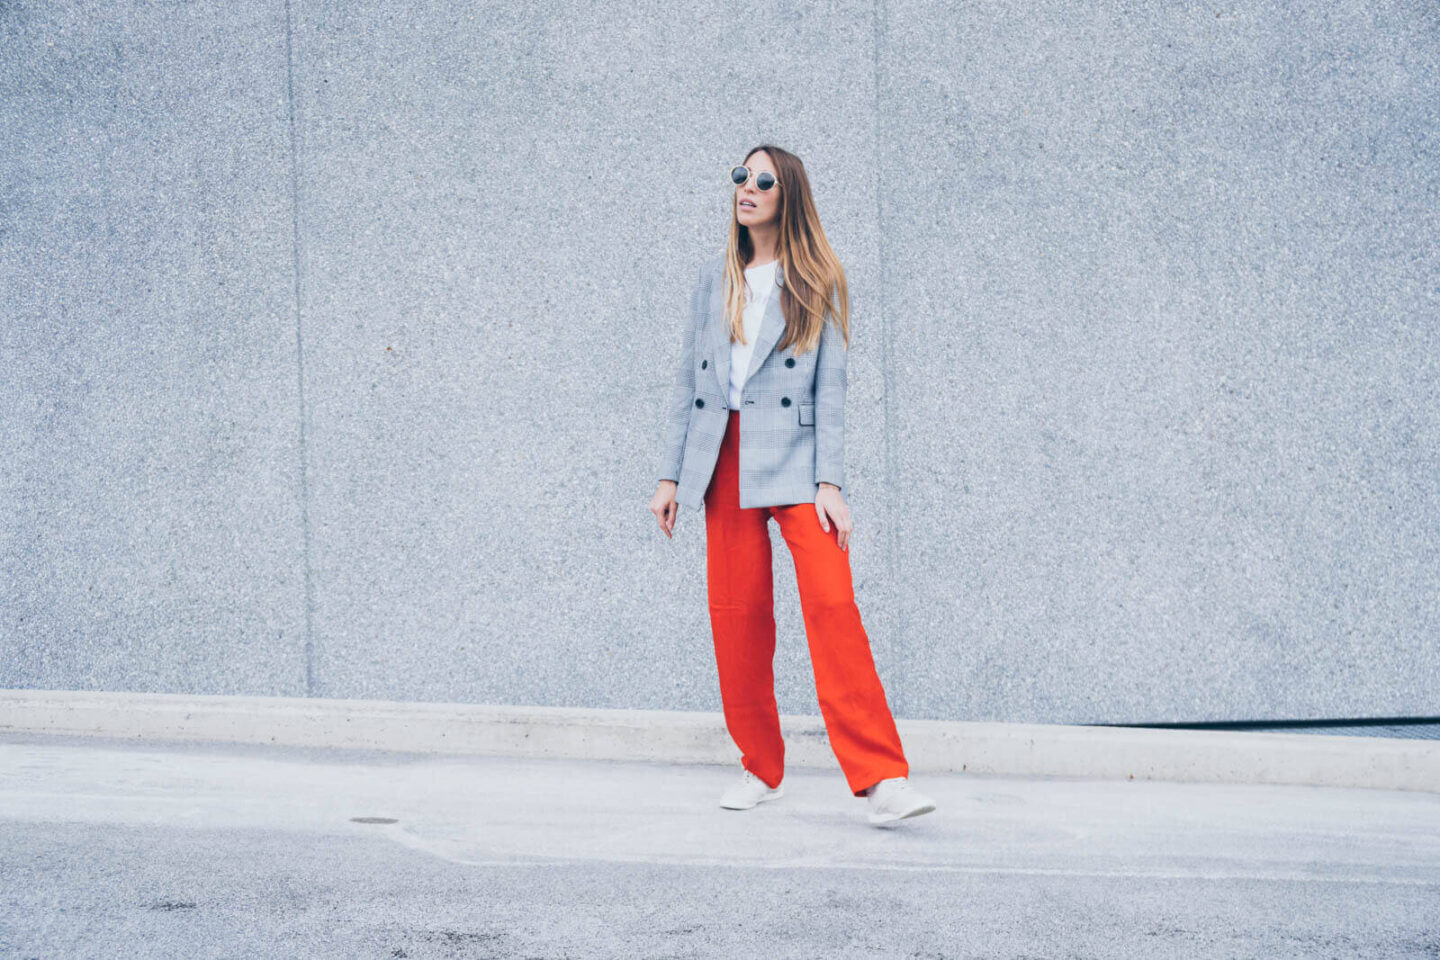 Outfit: Trendfarbe Rot und Glencheck Muster